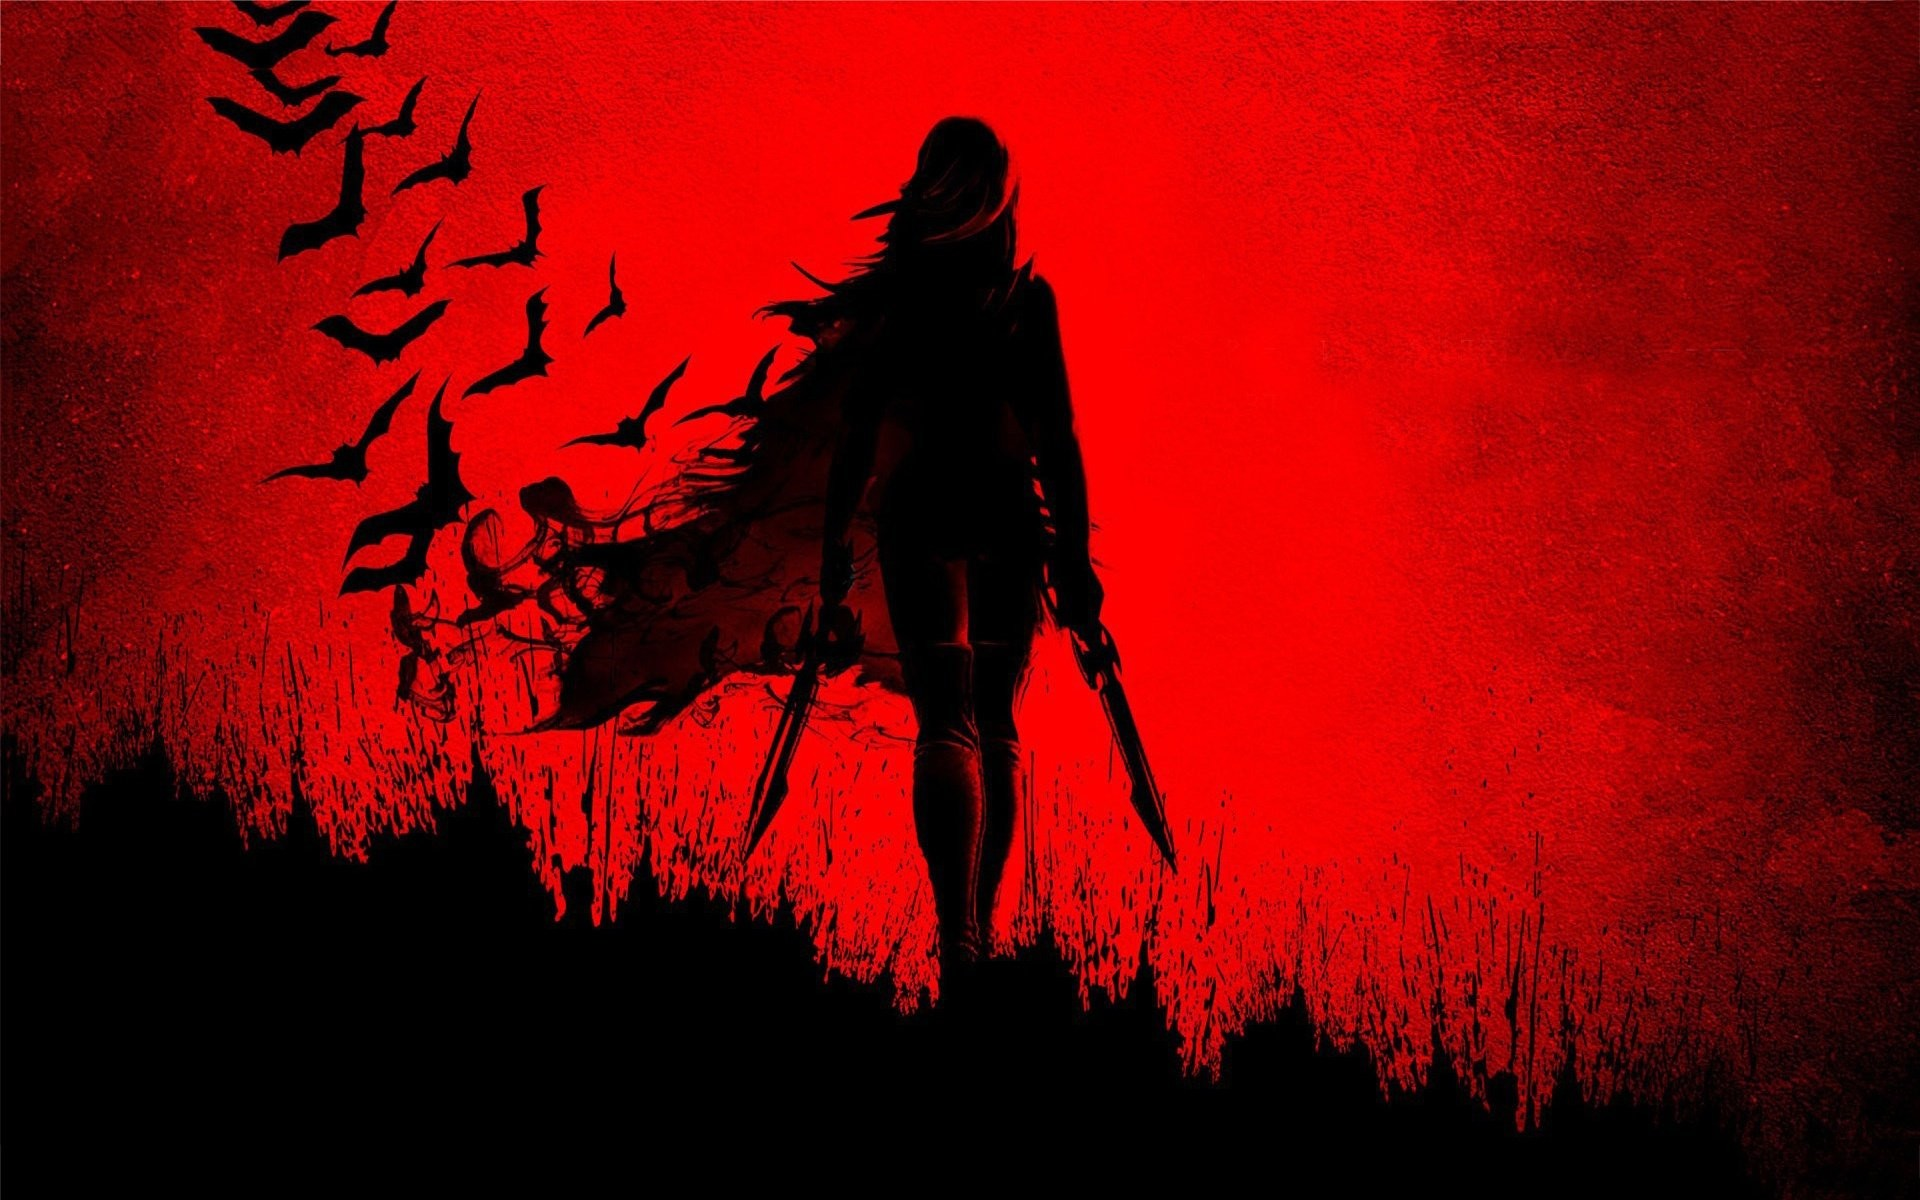 Red anime wallpaper 66 images - Red and black anime ...